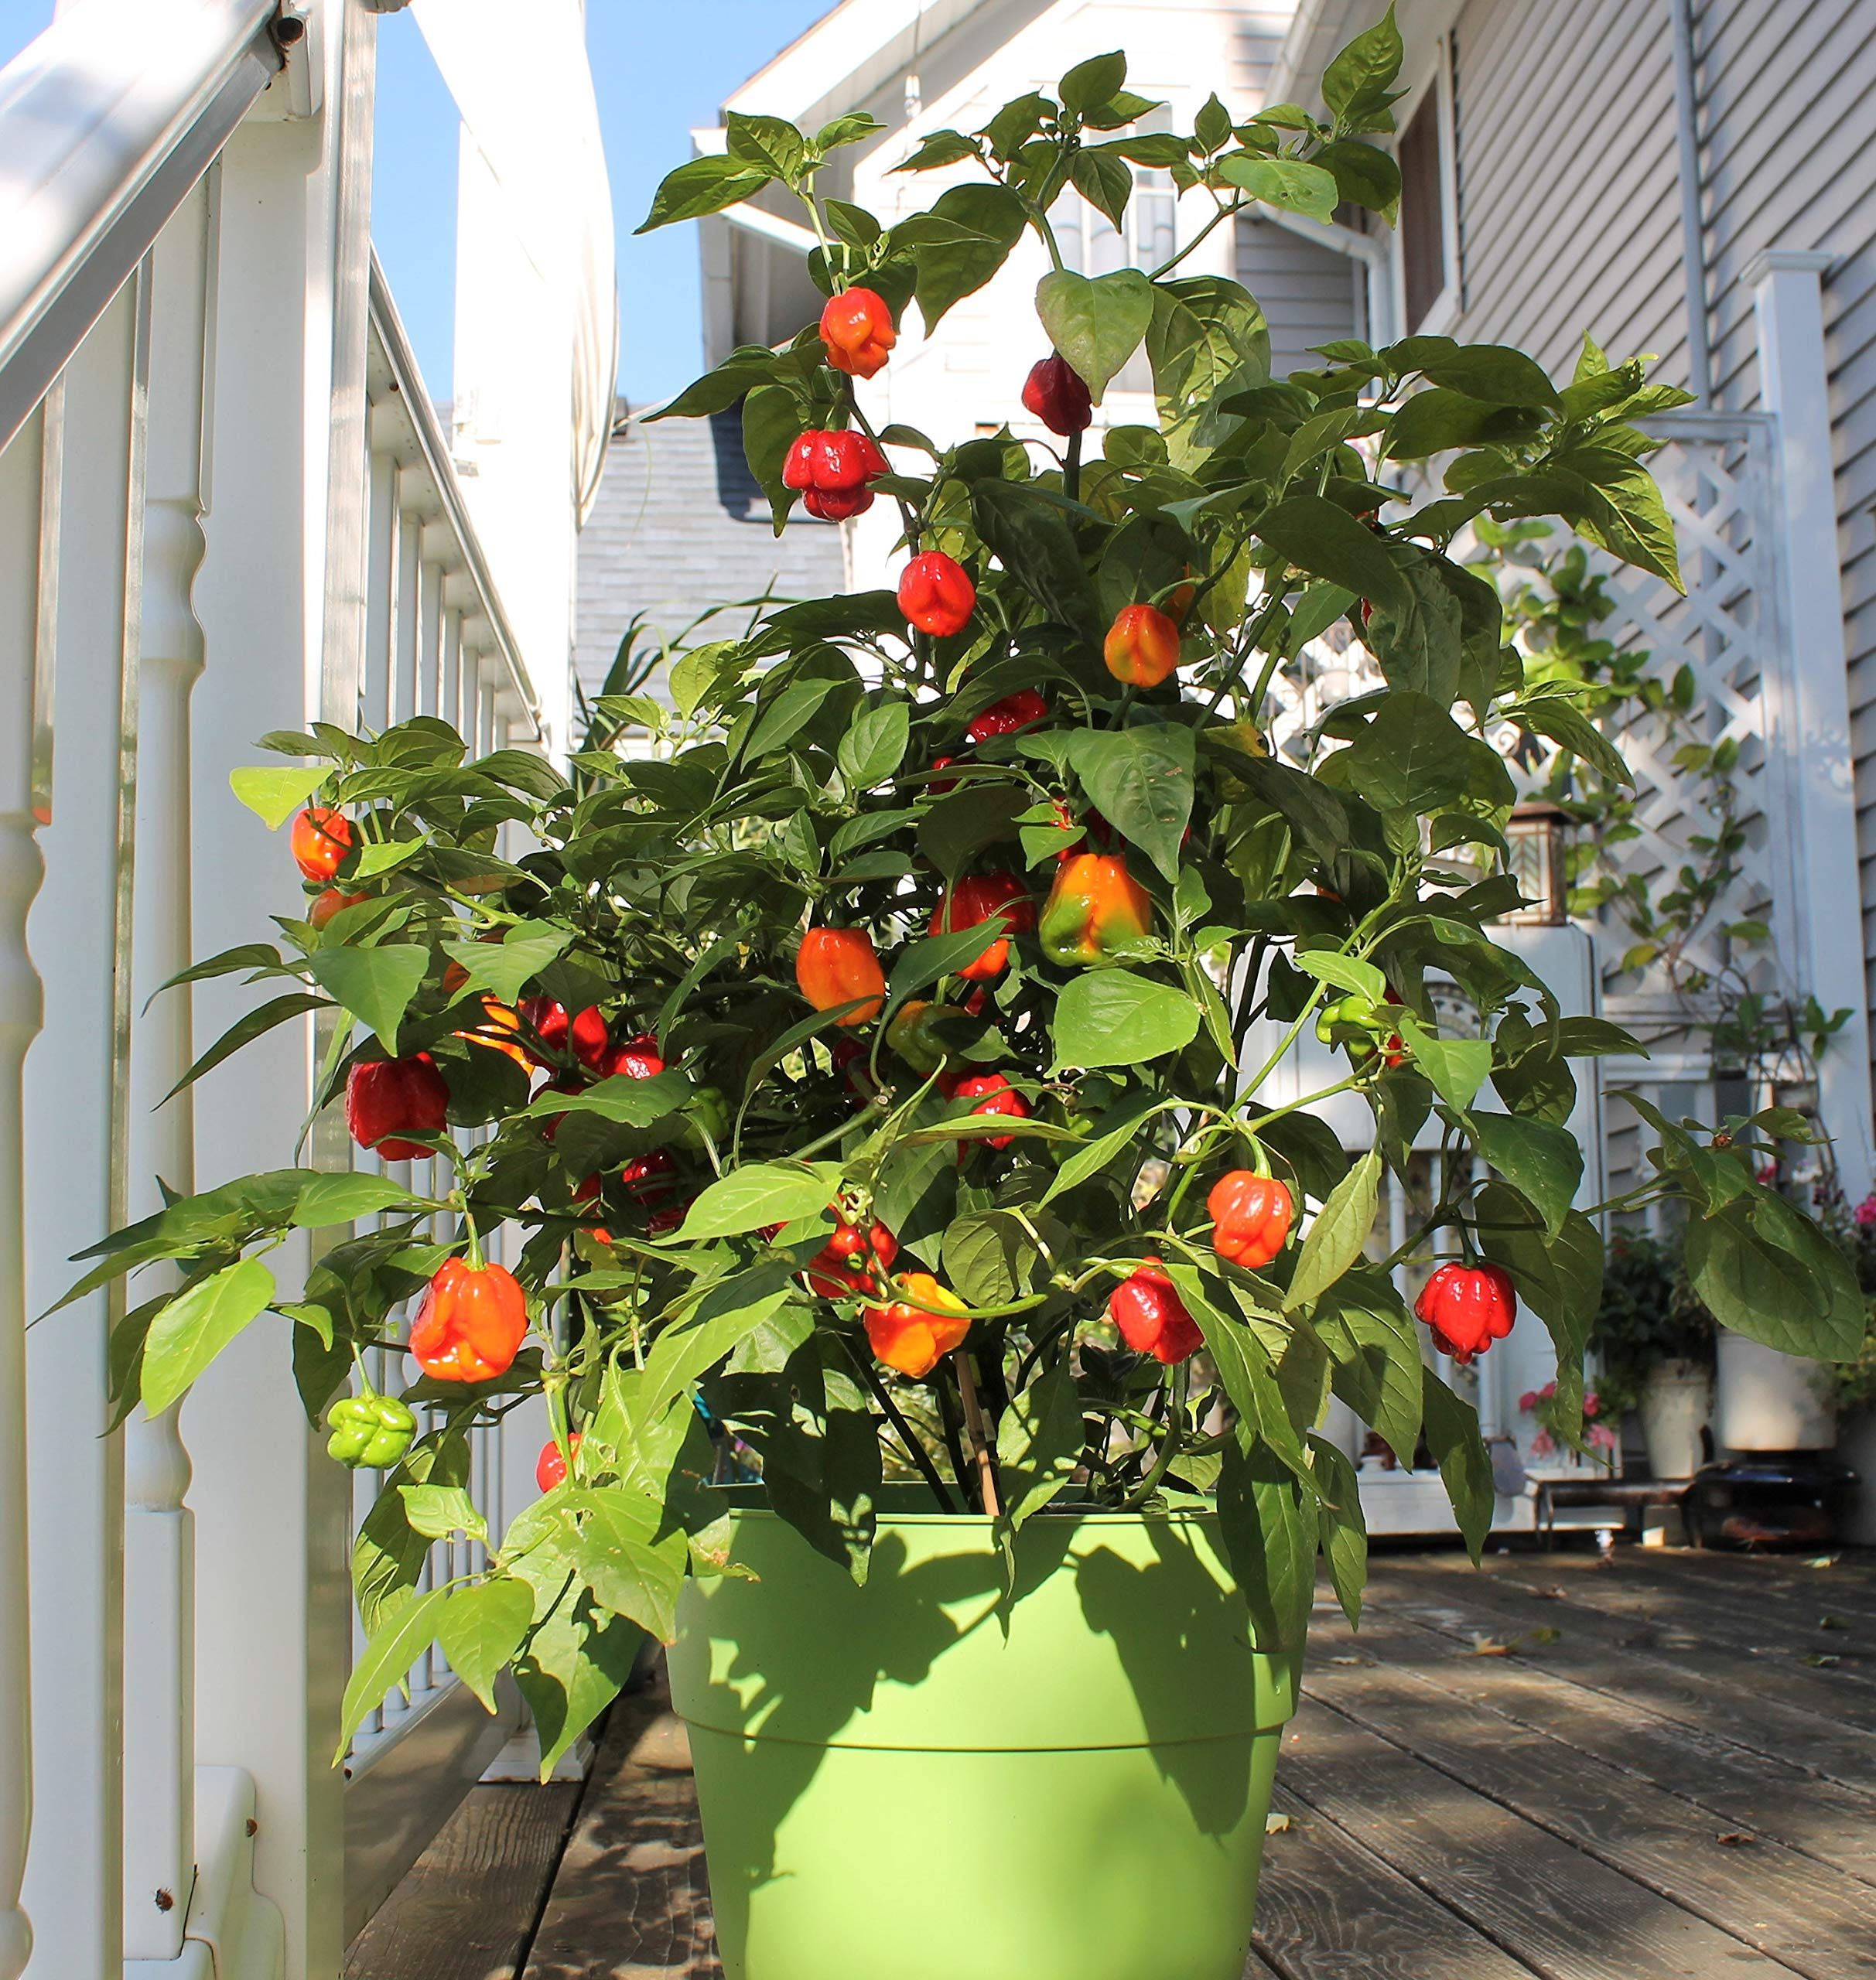 Carolina Reaper Pepper Plant - Non-GMO, Two (2) Live Plants - Not Seeds - Each 4''-7'' Tall- in 4'' Pots - World's Hottest Pepper - 2.2 Million Scoville Units